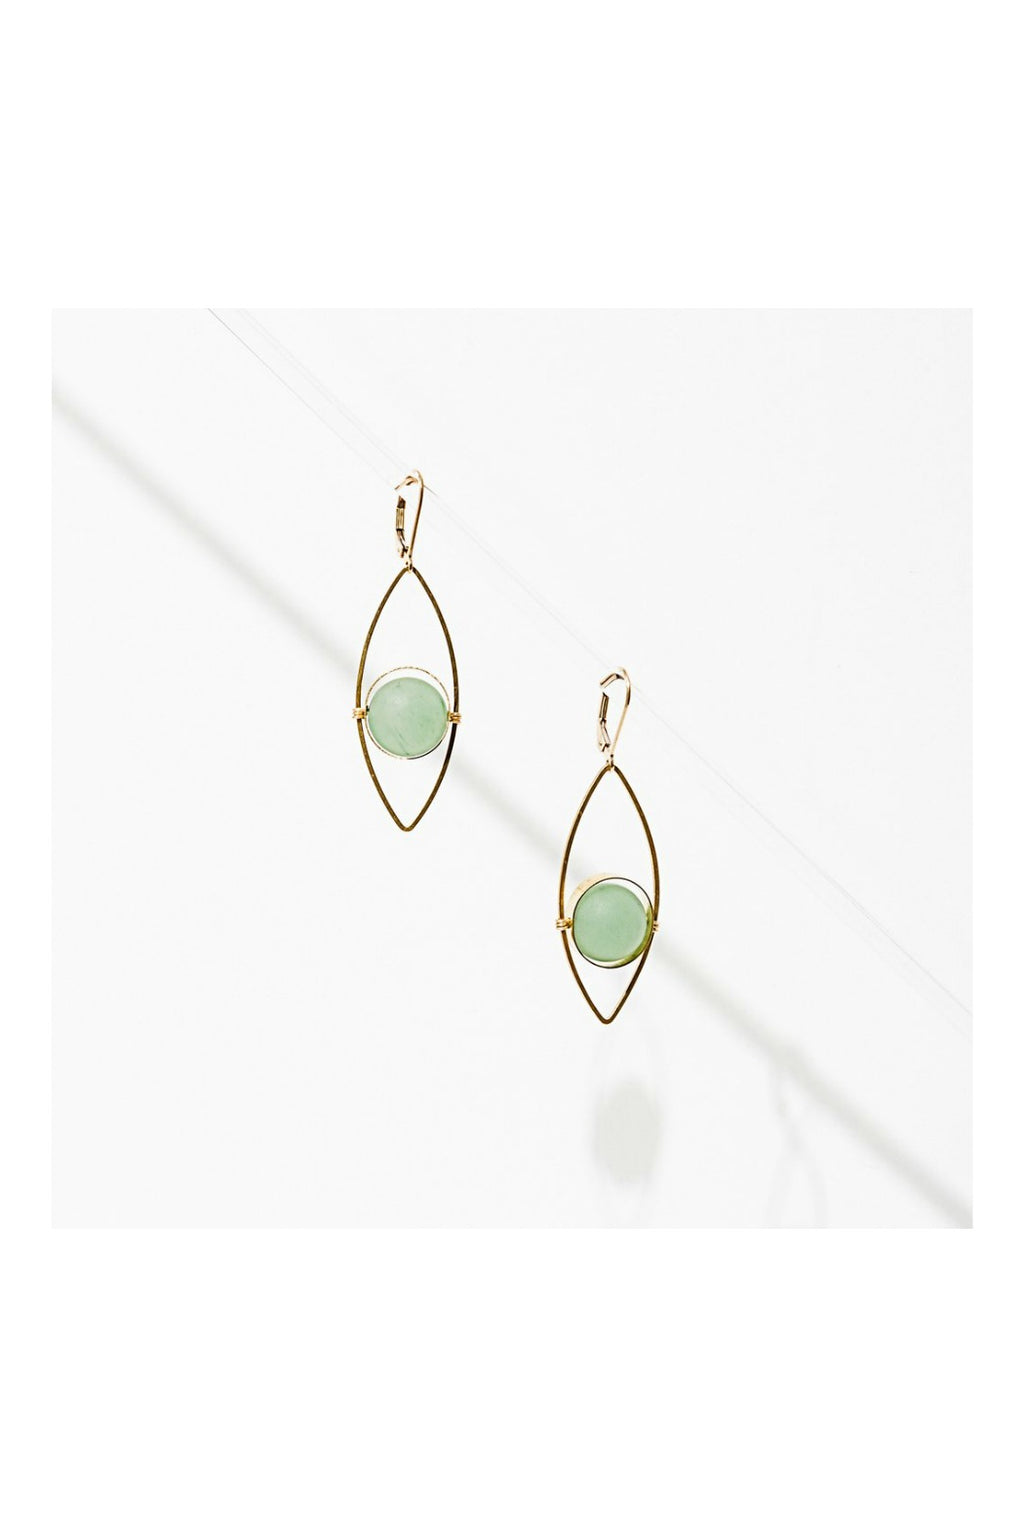 Larissa Loden Tempest Earrings - Green Aventurine